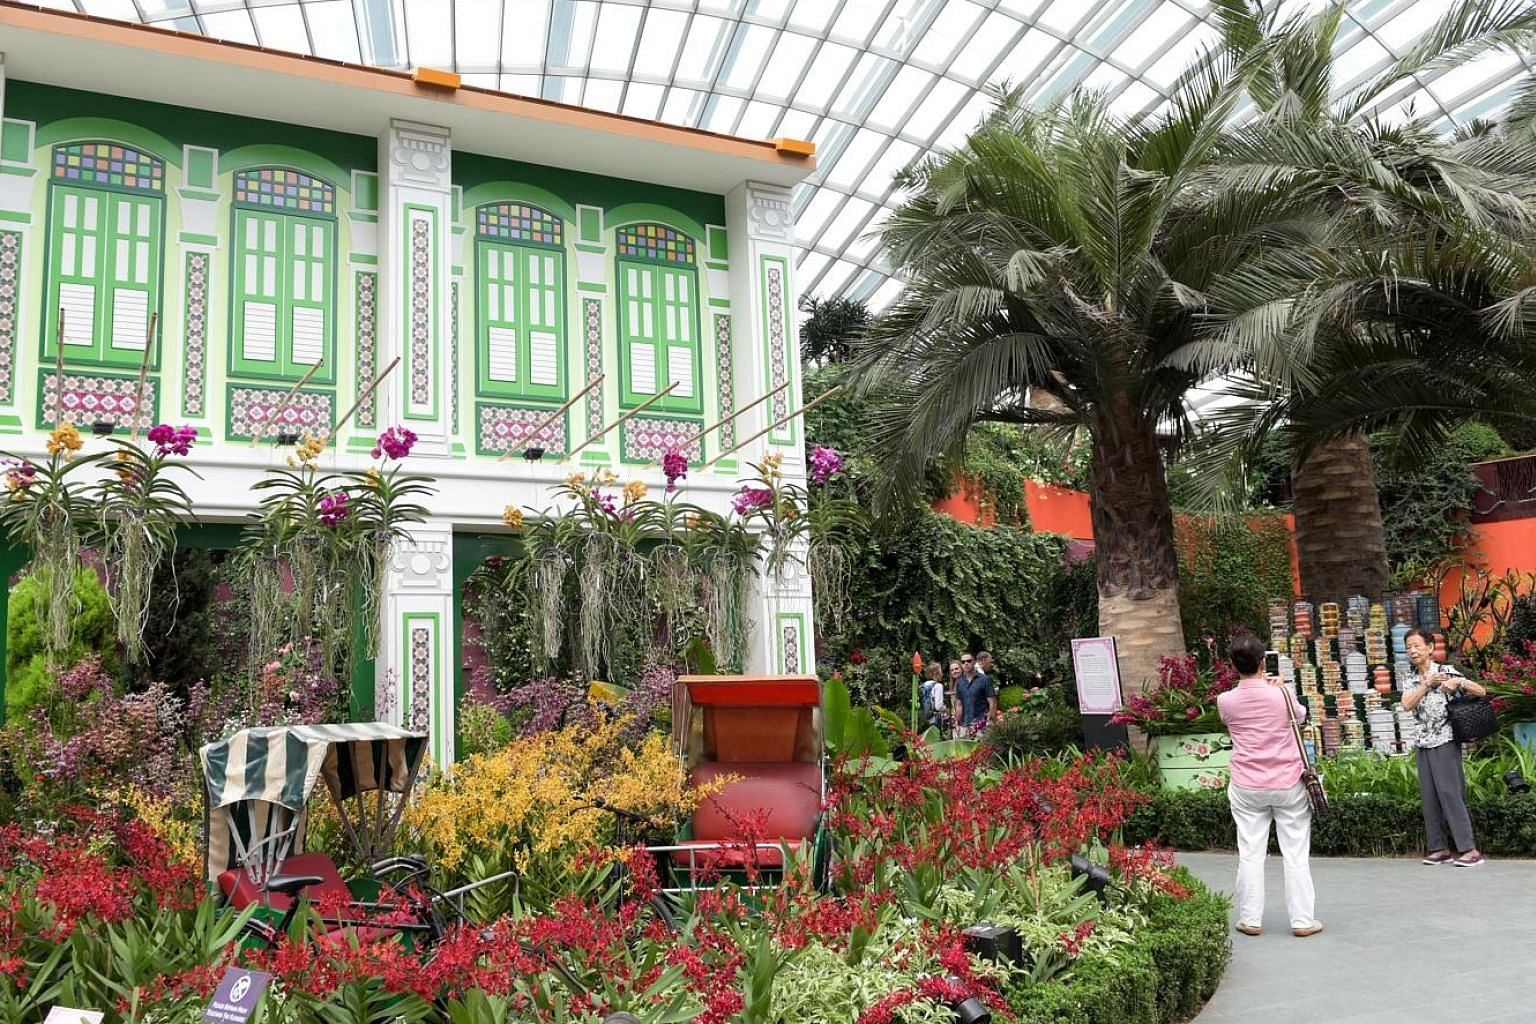 A Peranakan-inspired Orchid Extravaganza at Gardens by the Bay sees colourful blooms spring to life amid shophouse facades, tingkat carriers and kebayas. The Orchid Extravaganza, held in conjunction with the Singapore Garden Festival 2018, runs from